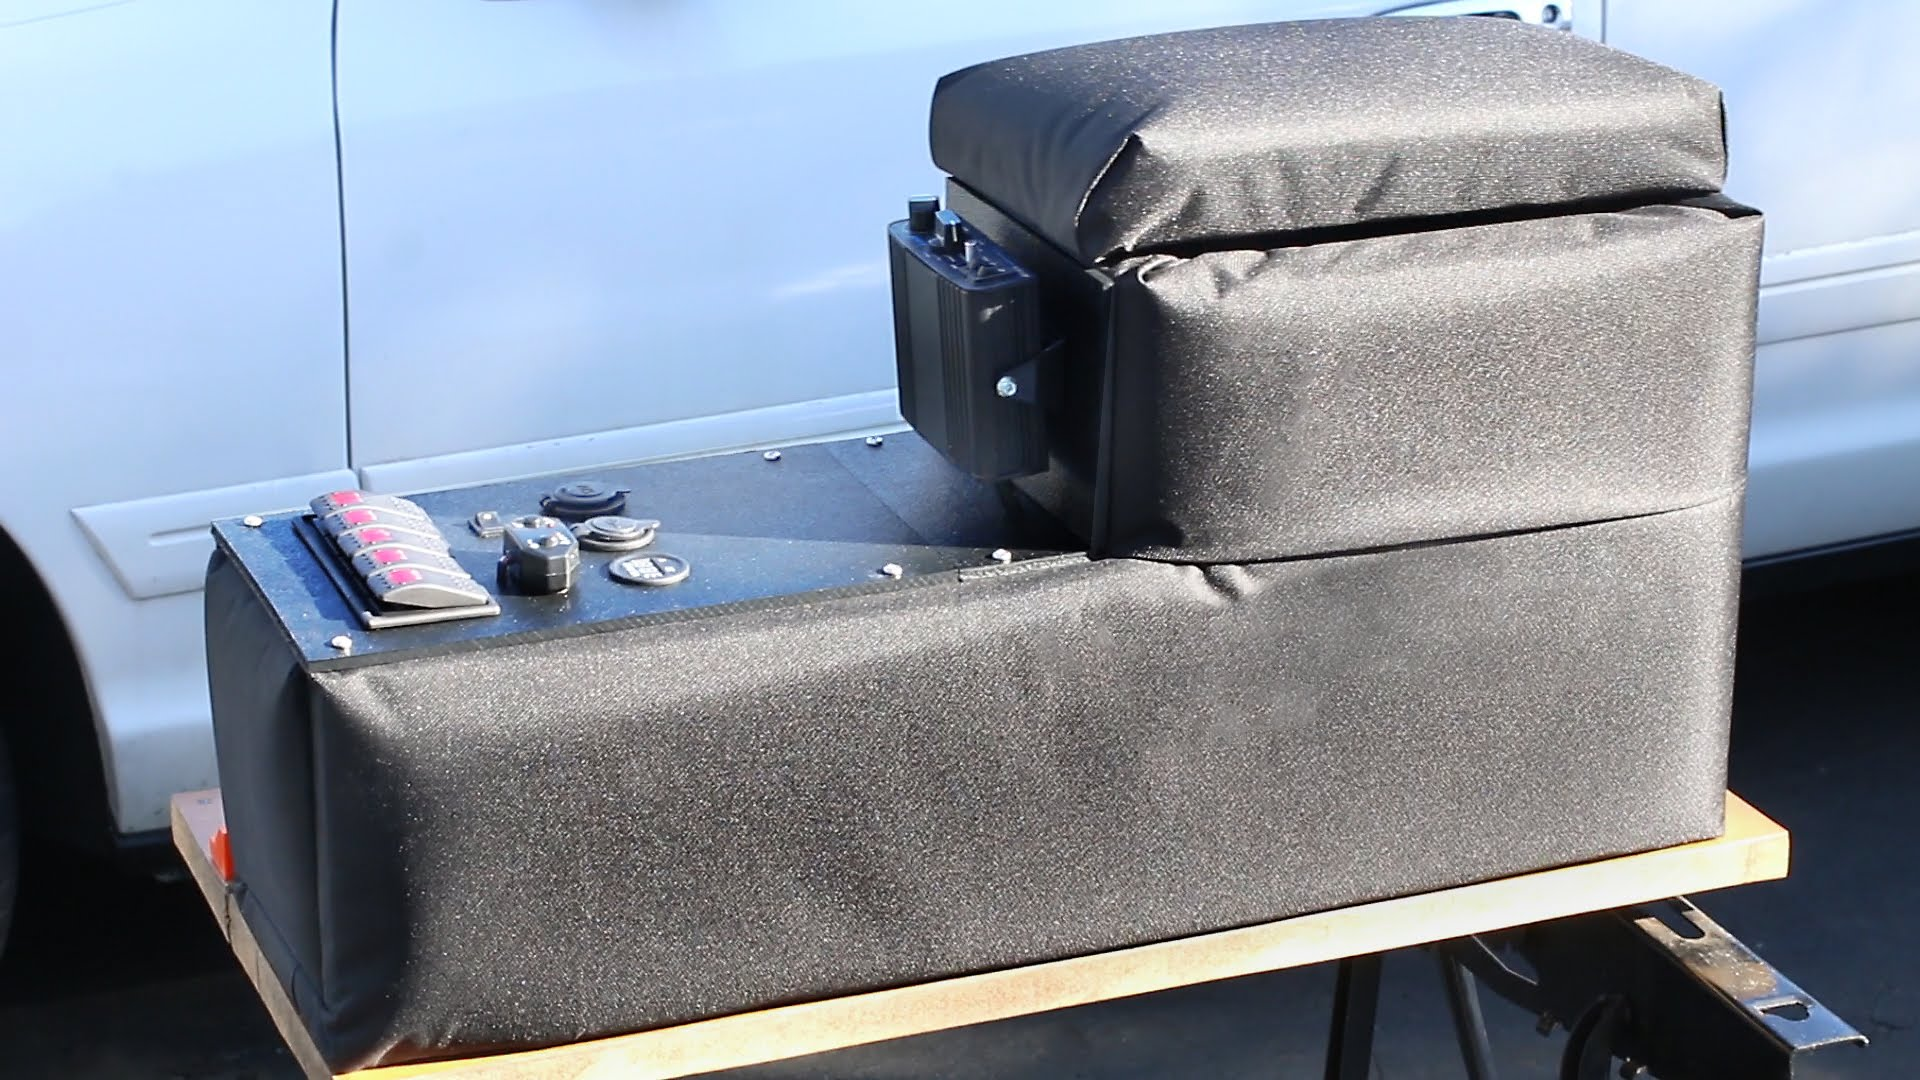 Learn How To Build A Center Console For Your Car With This